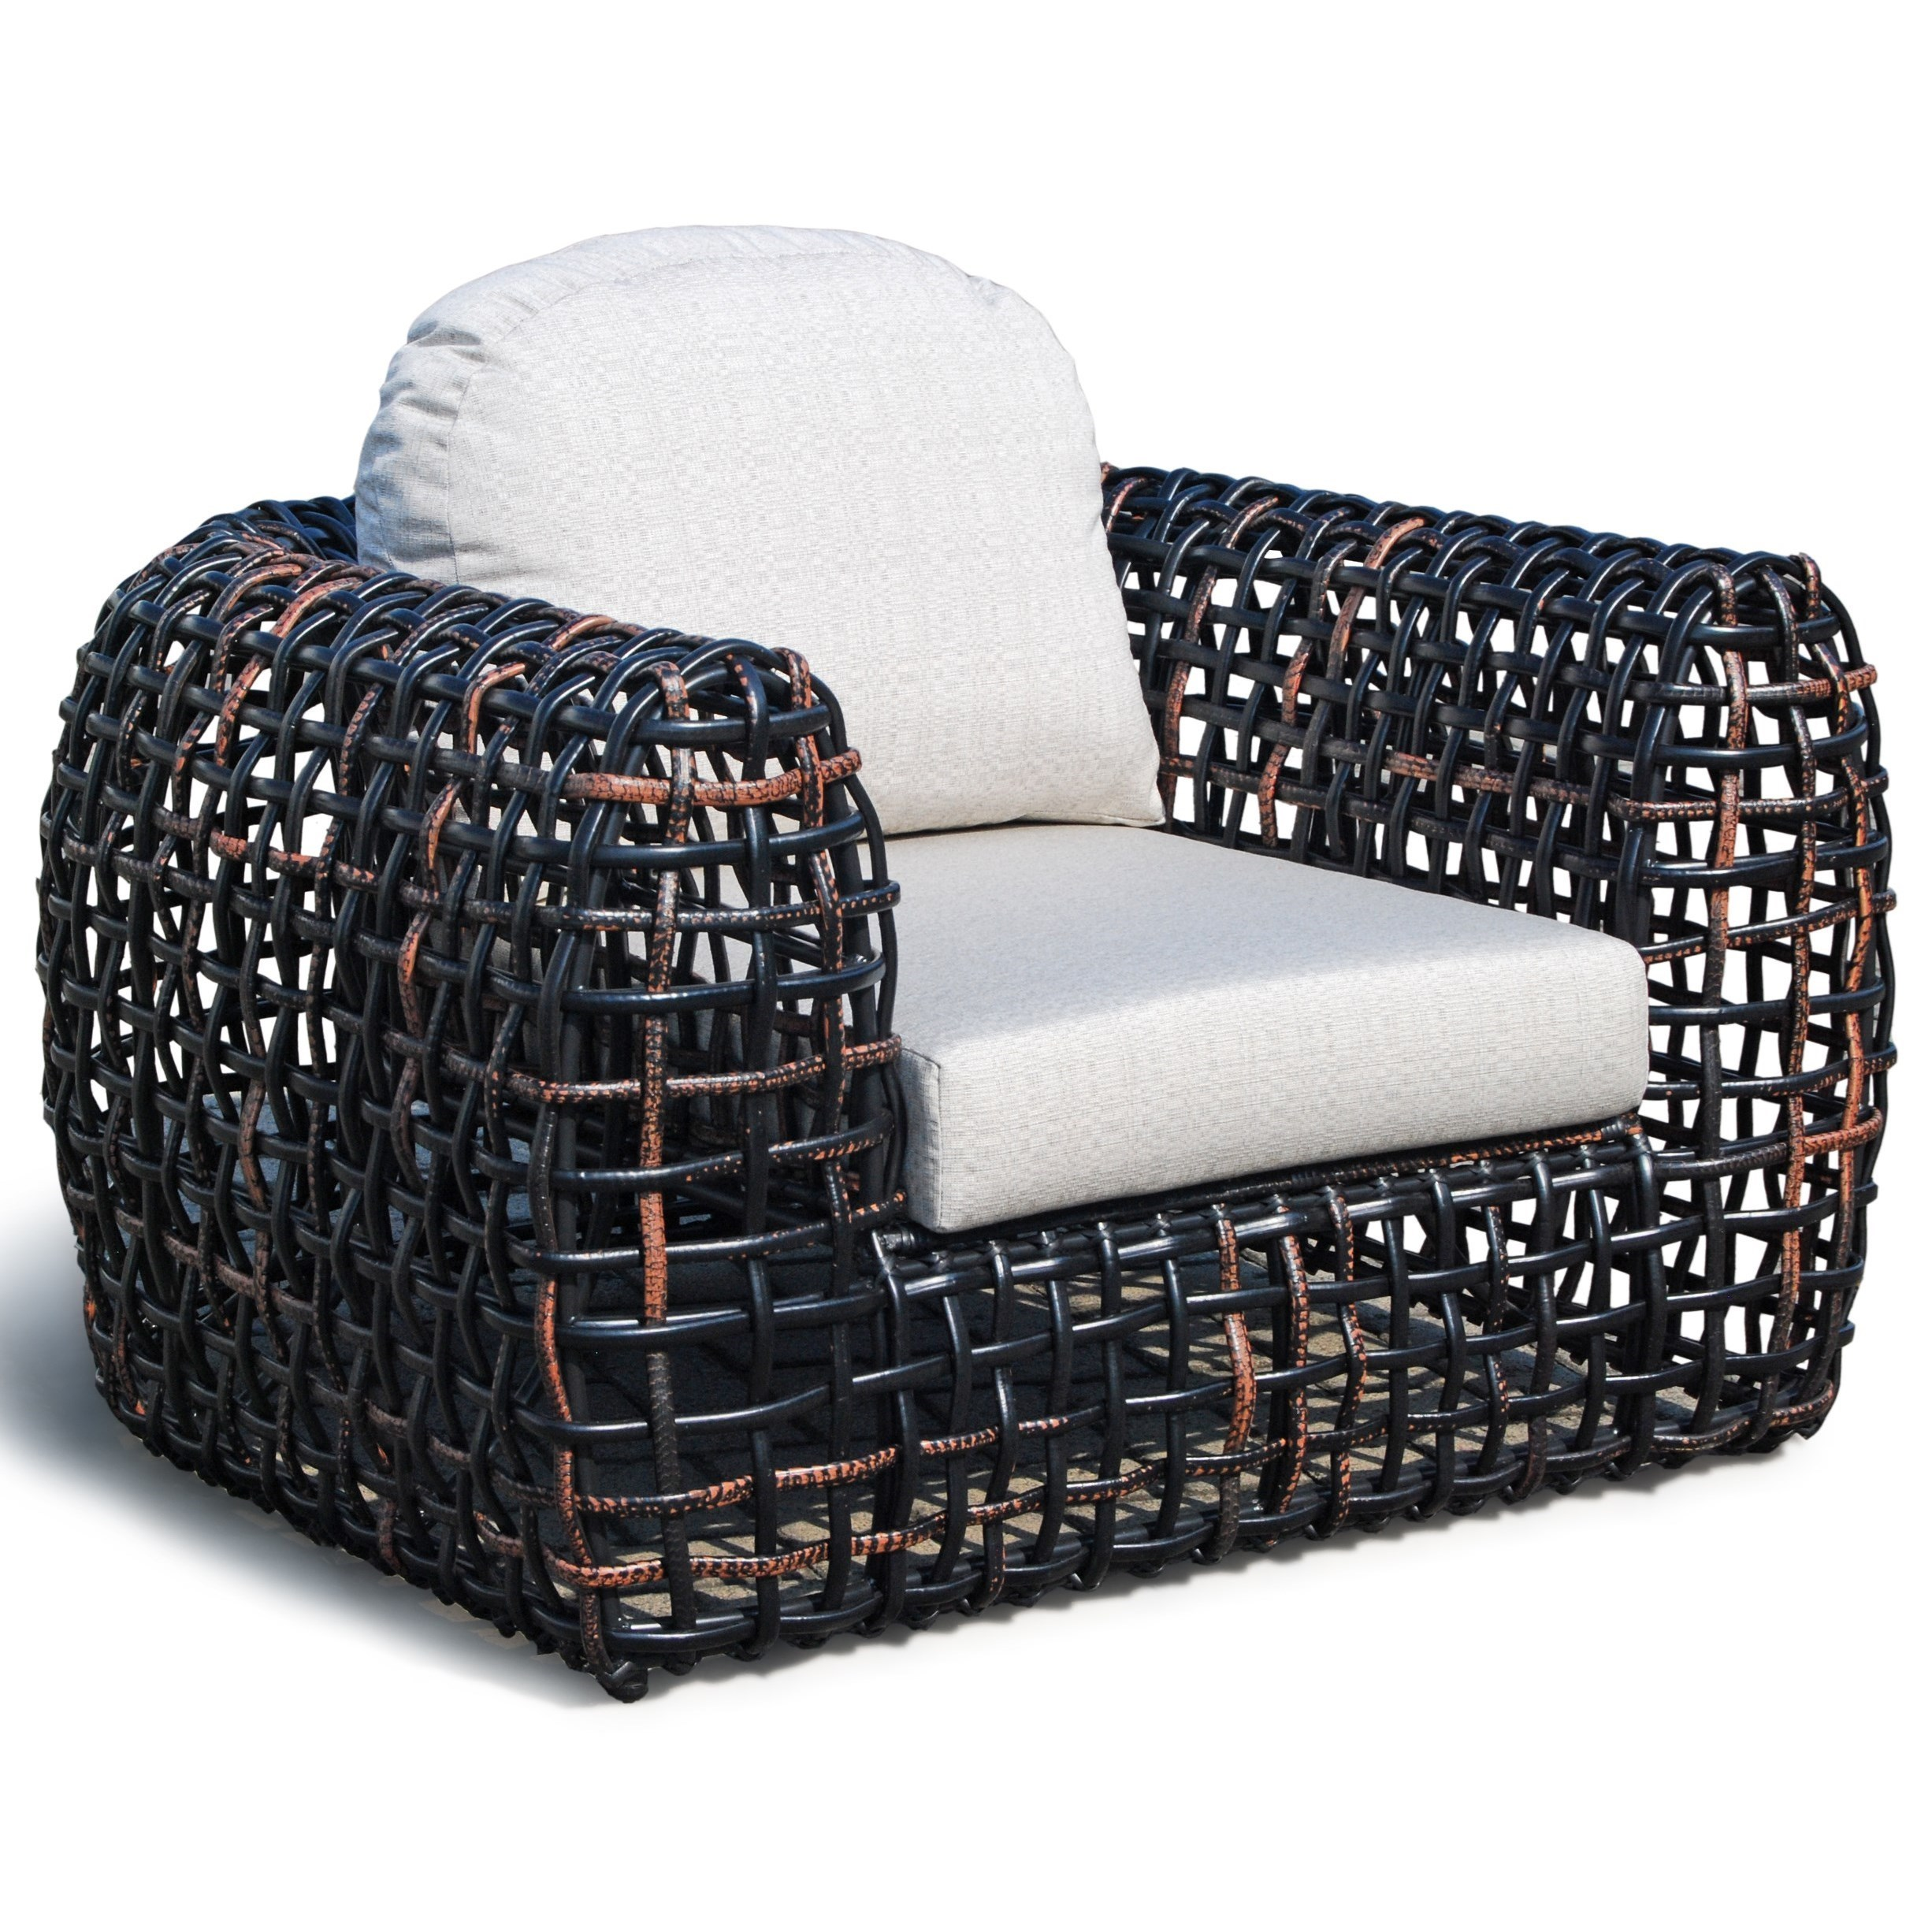 Home Outdoor Upholstered Chairs Skyline Design Dynasty Outdoor Armchair.  Skyline Design DynastyOutdoor Armchair ...